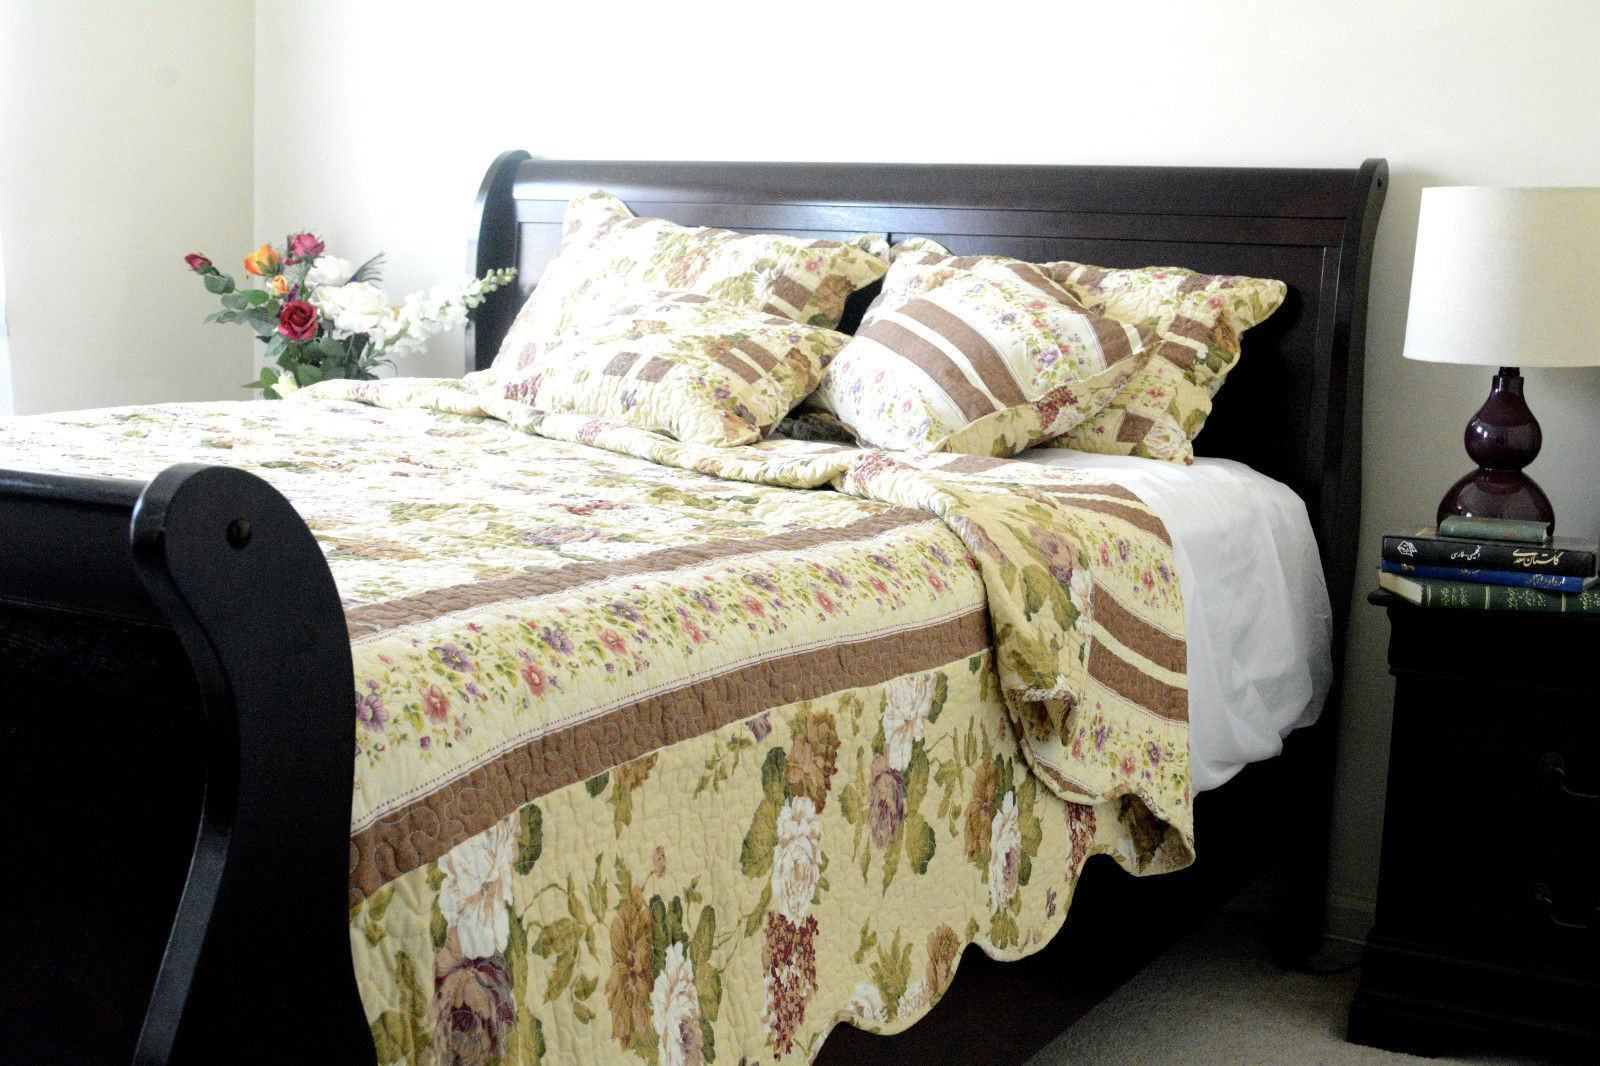 Dada Bedding Dusty Roses Garden Floral Patchwork Cotton Quilted